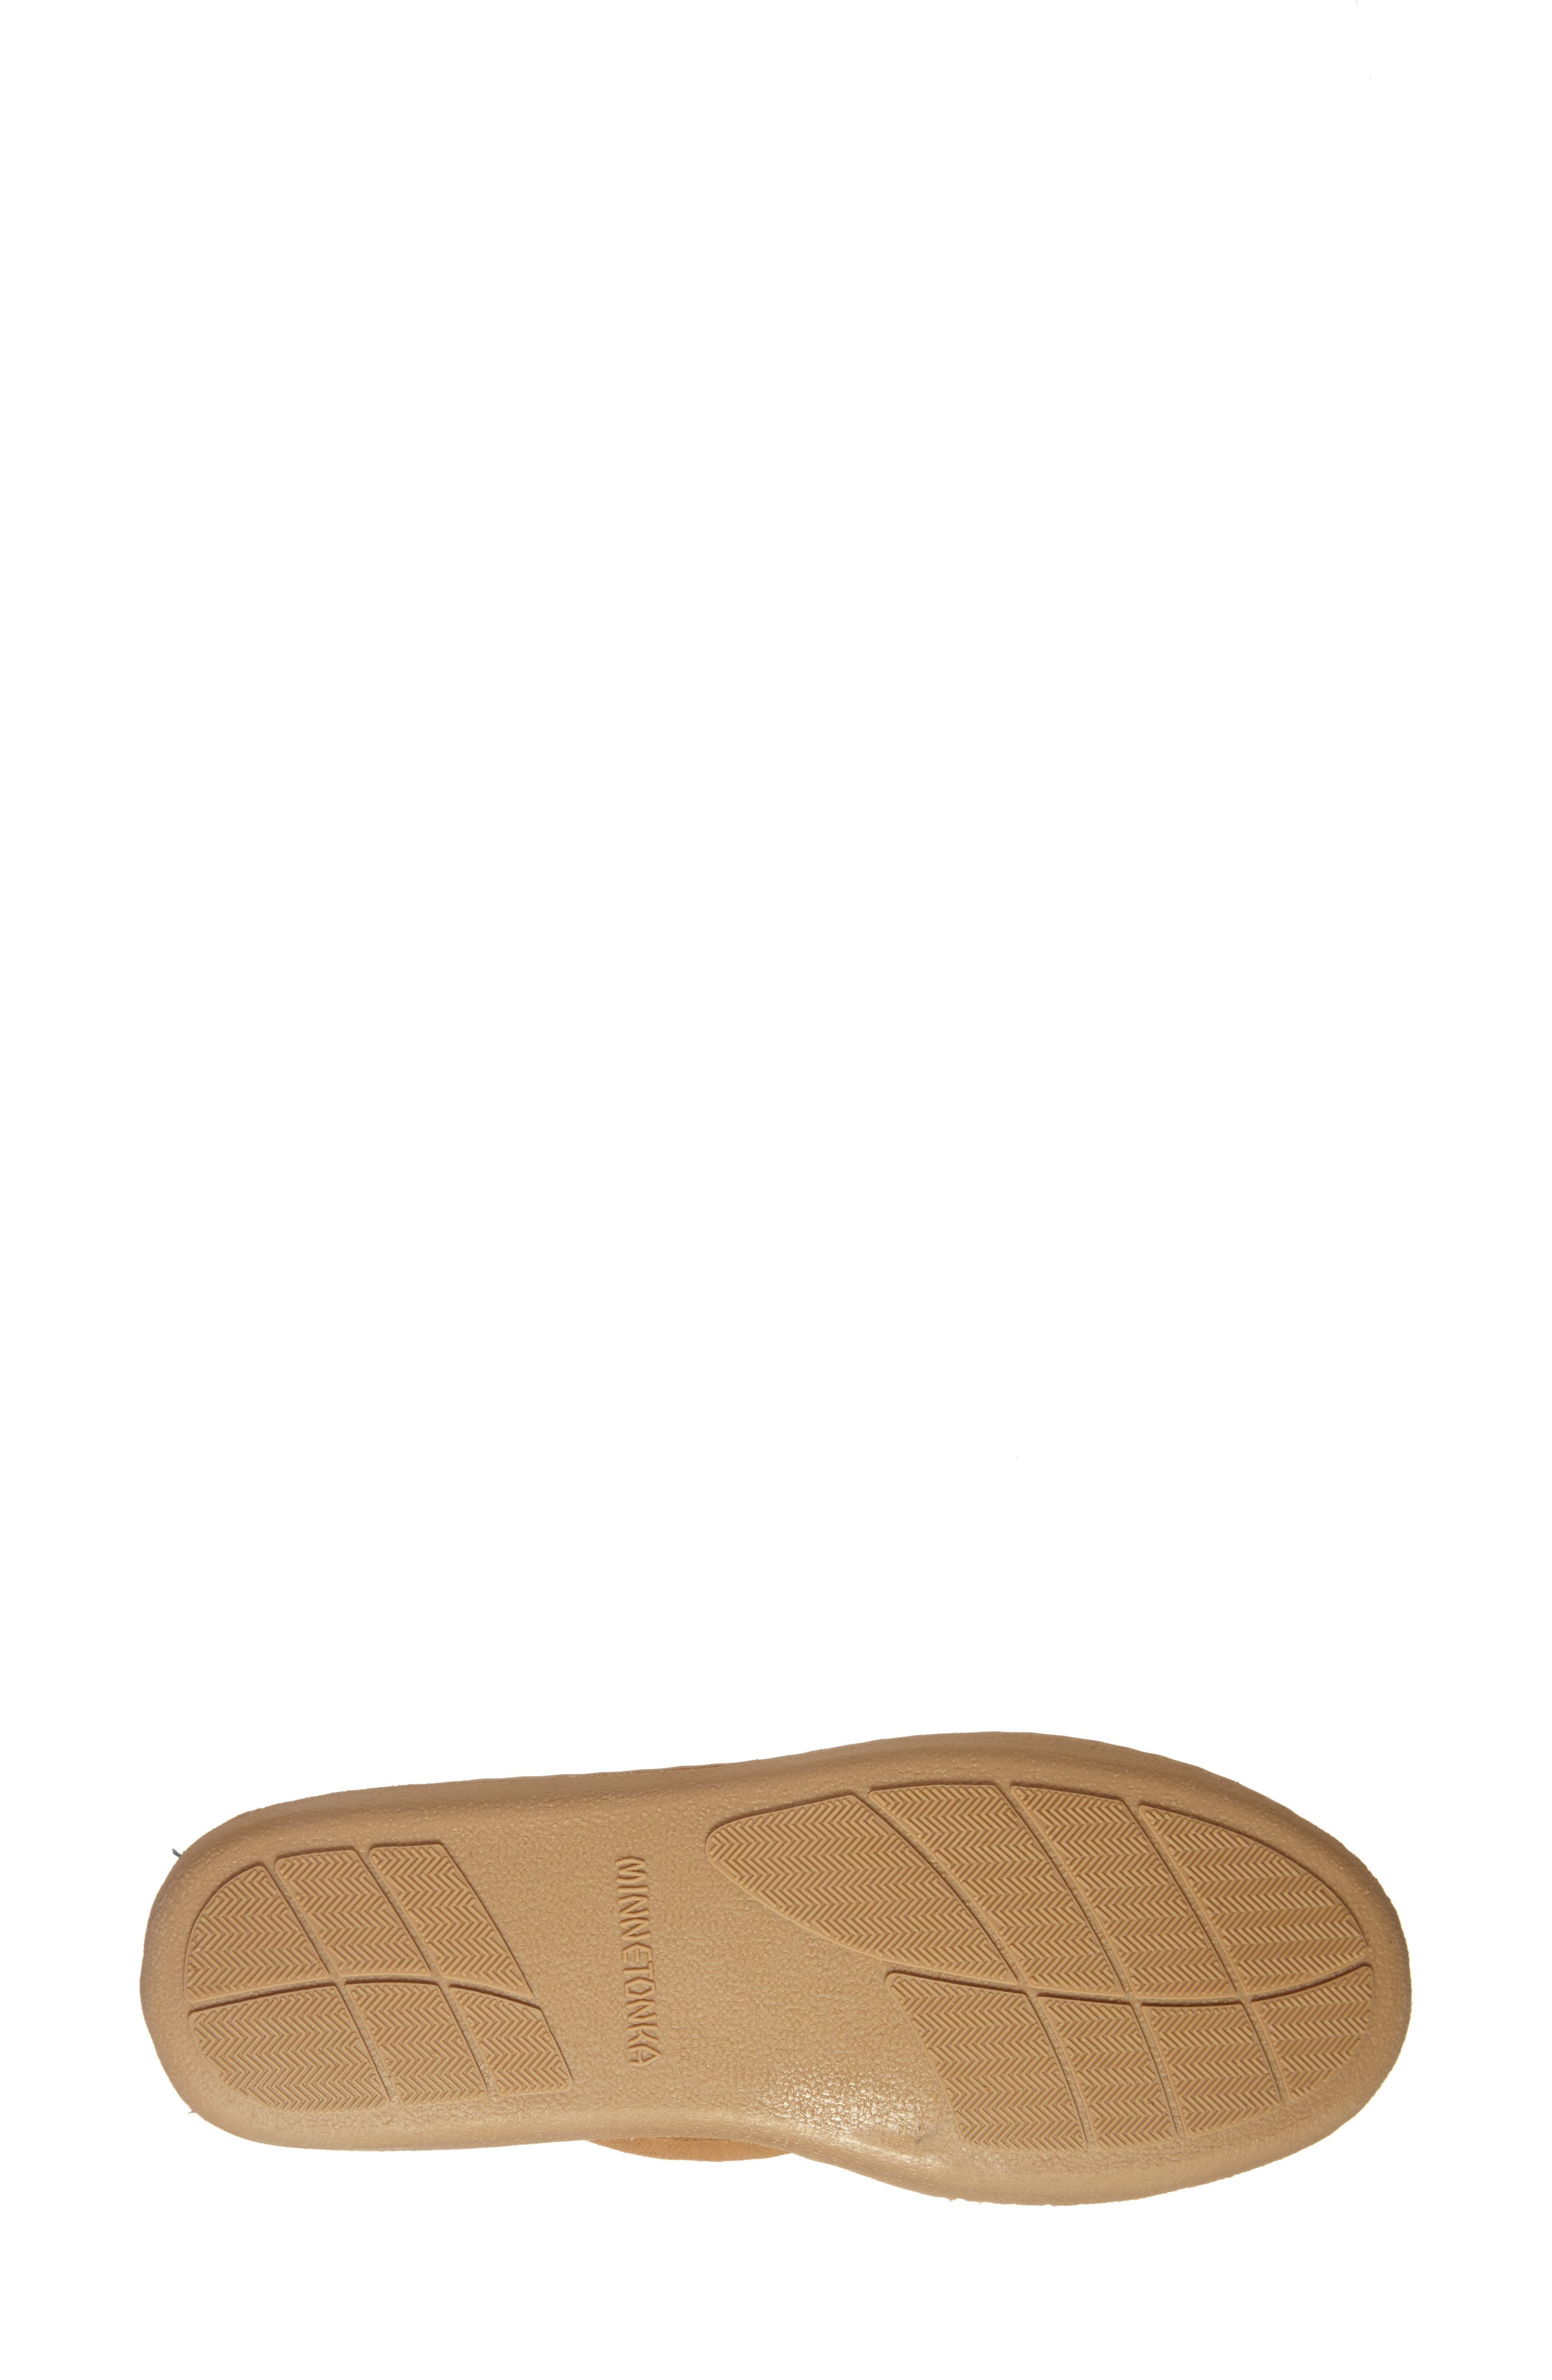 MINNETONKA, Sheepskin Hard Sole Moccasin Slipper, Alternate thumbnail 5, color, TAN SUEDE